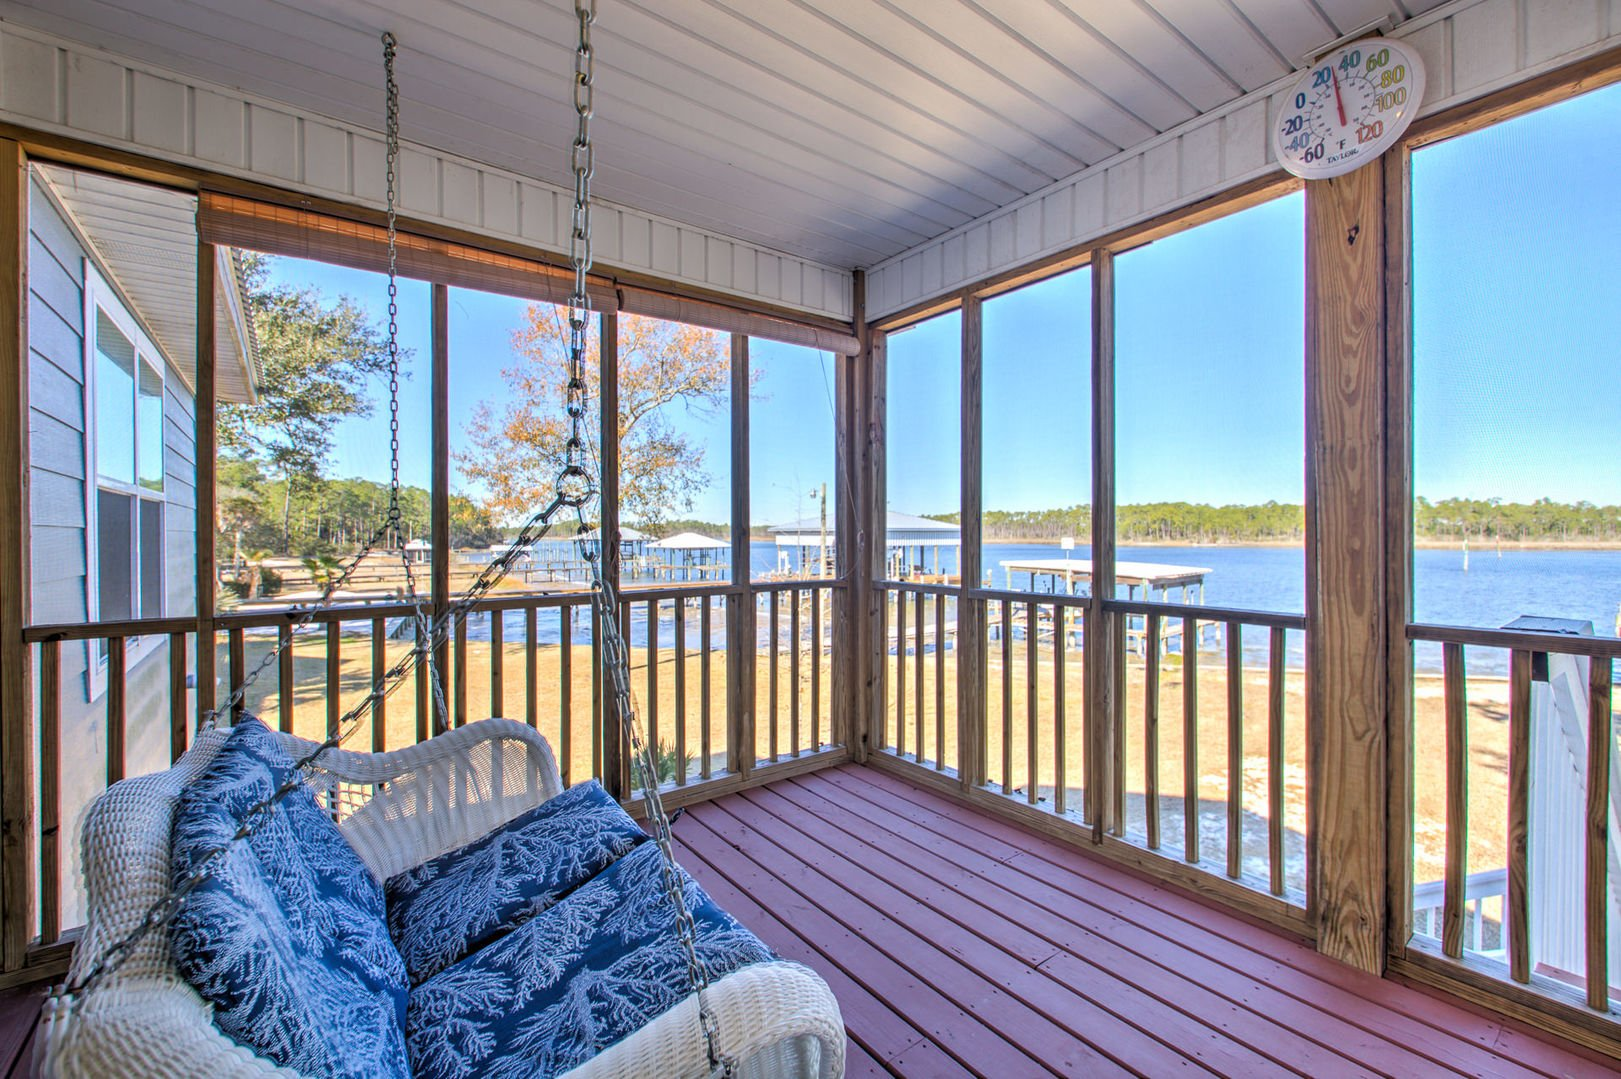 Enjoy Beautiful Views From the Porch Swing.